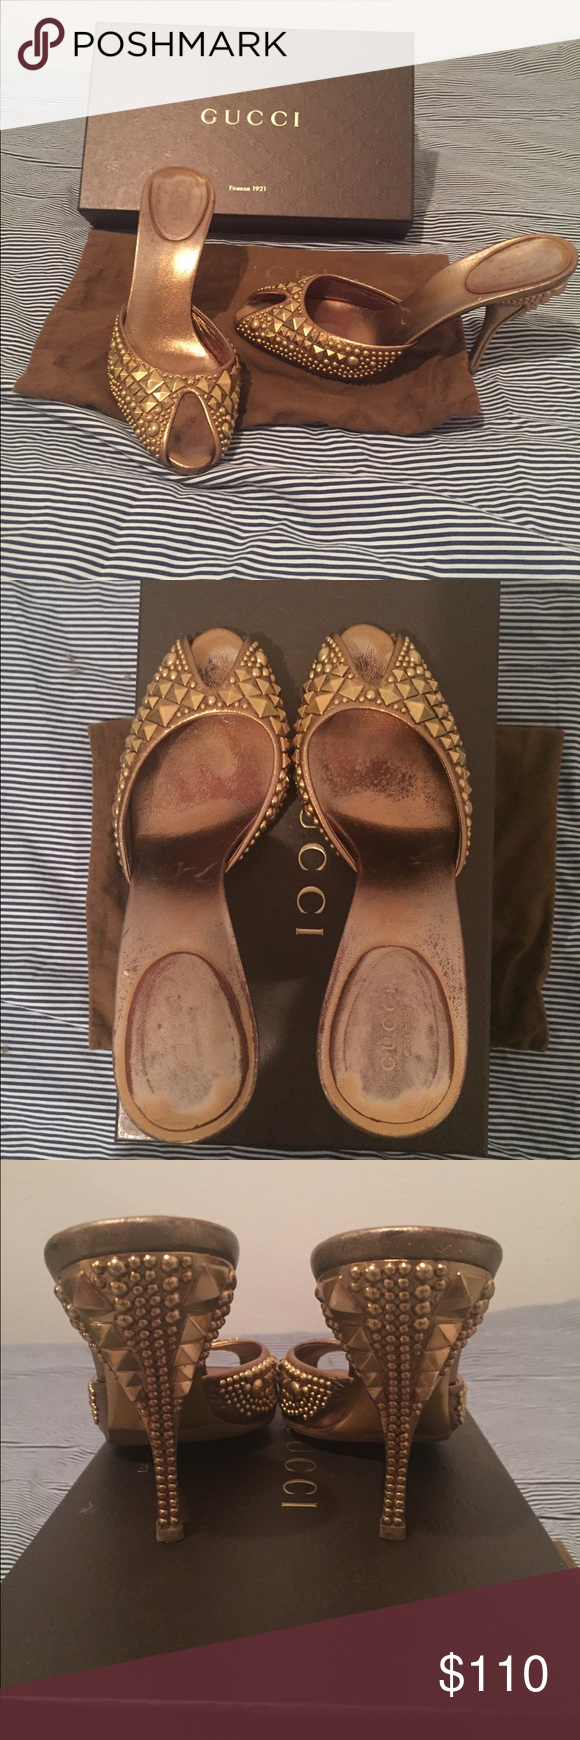 1f11aecdb98 Authentic Gucci gold embellished heels slides 7.5 Gold embellished  rhinestone slides by Gucci. These are